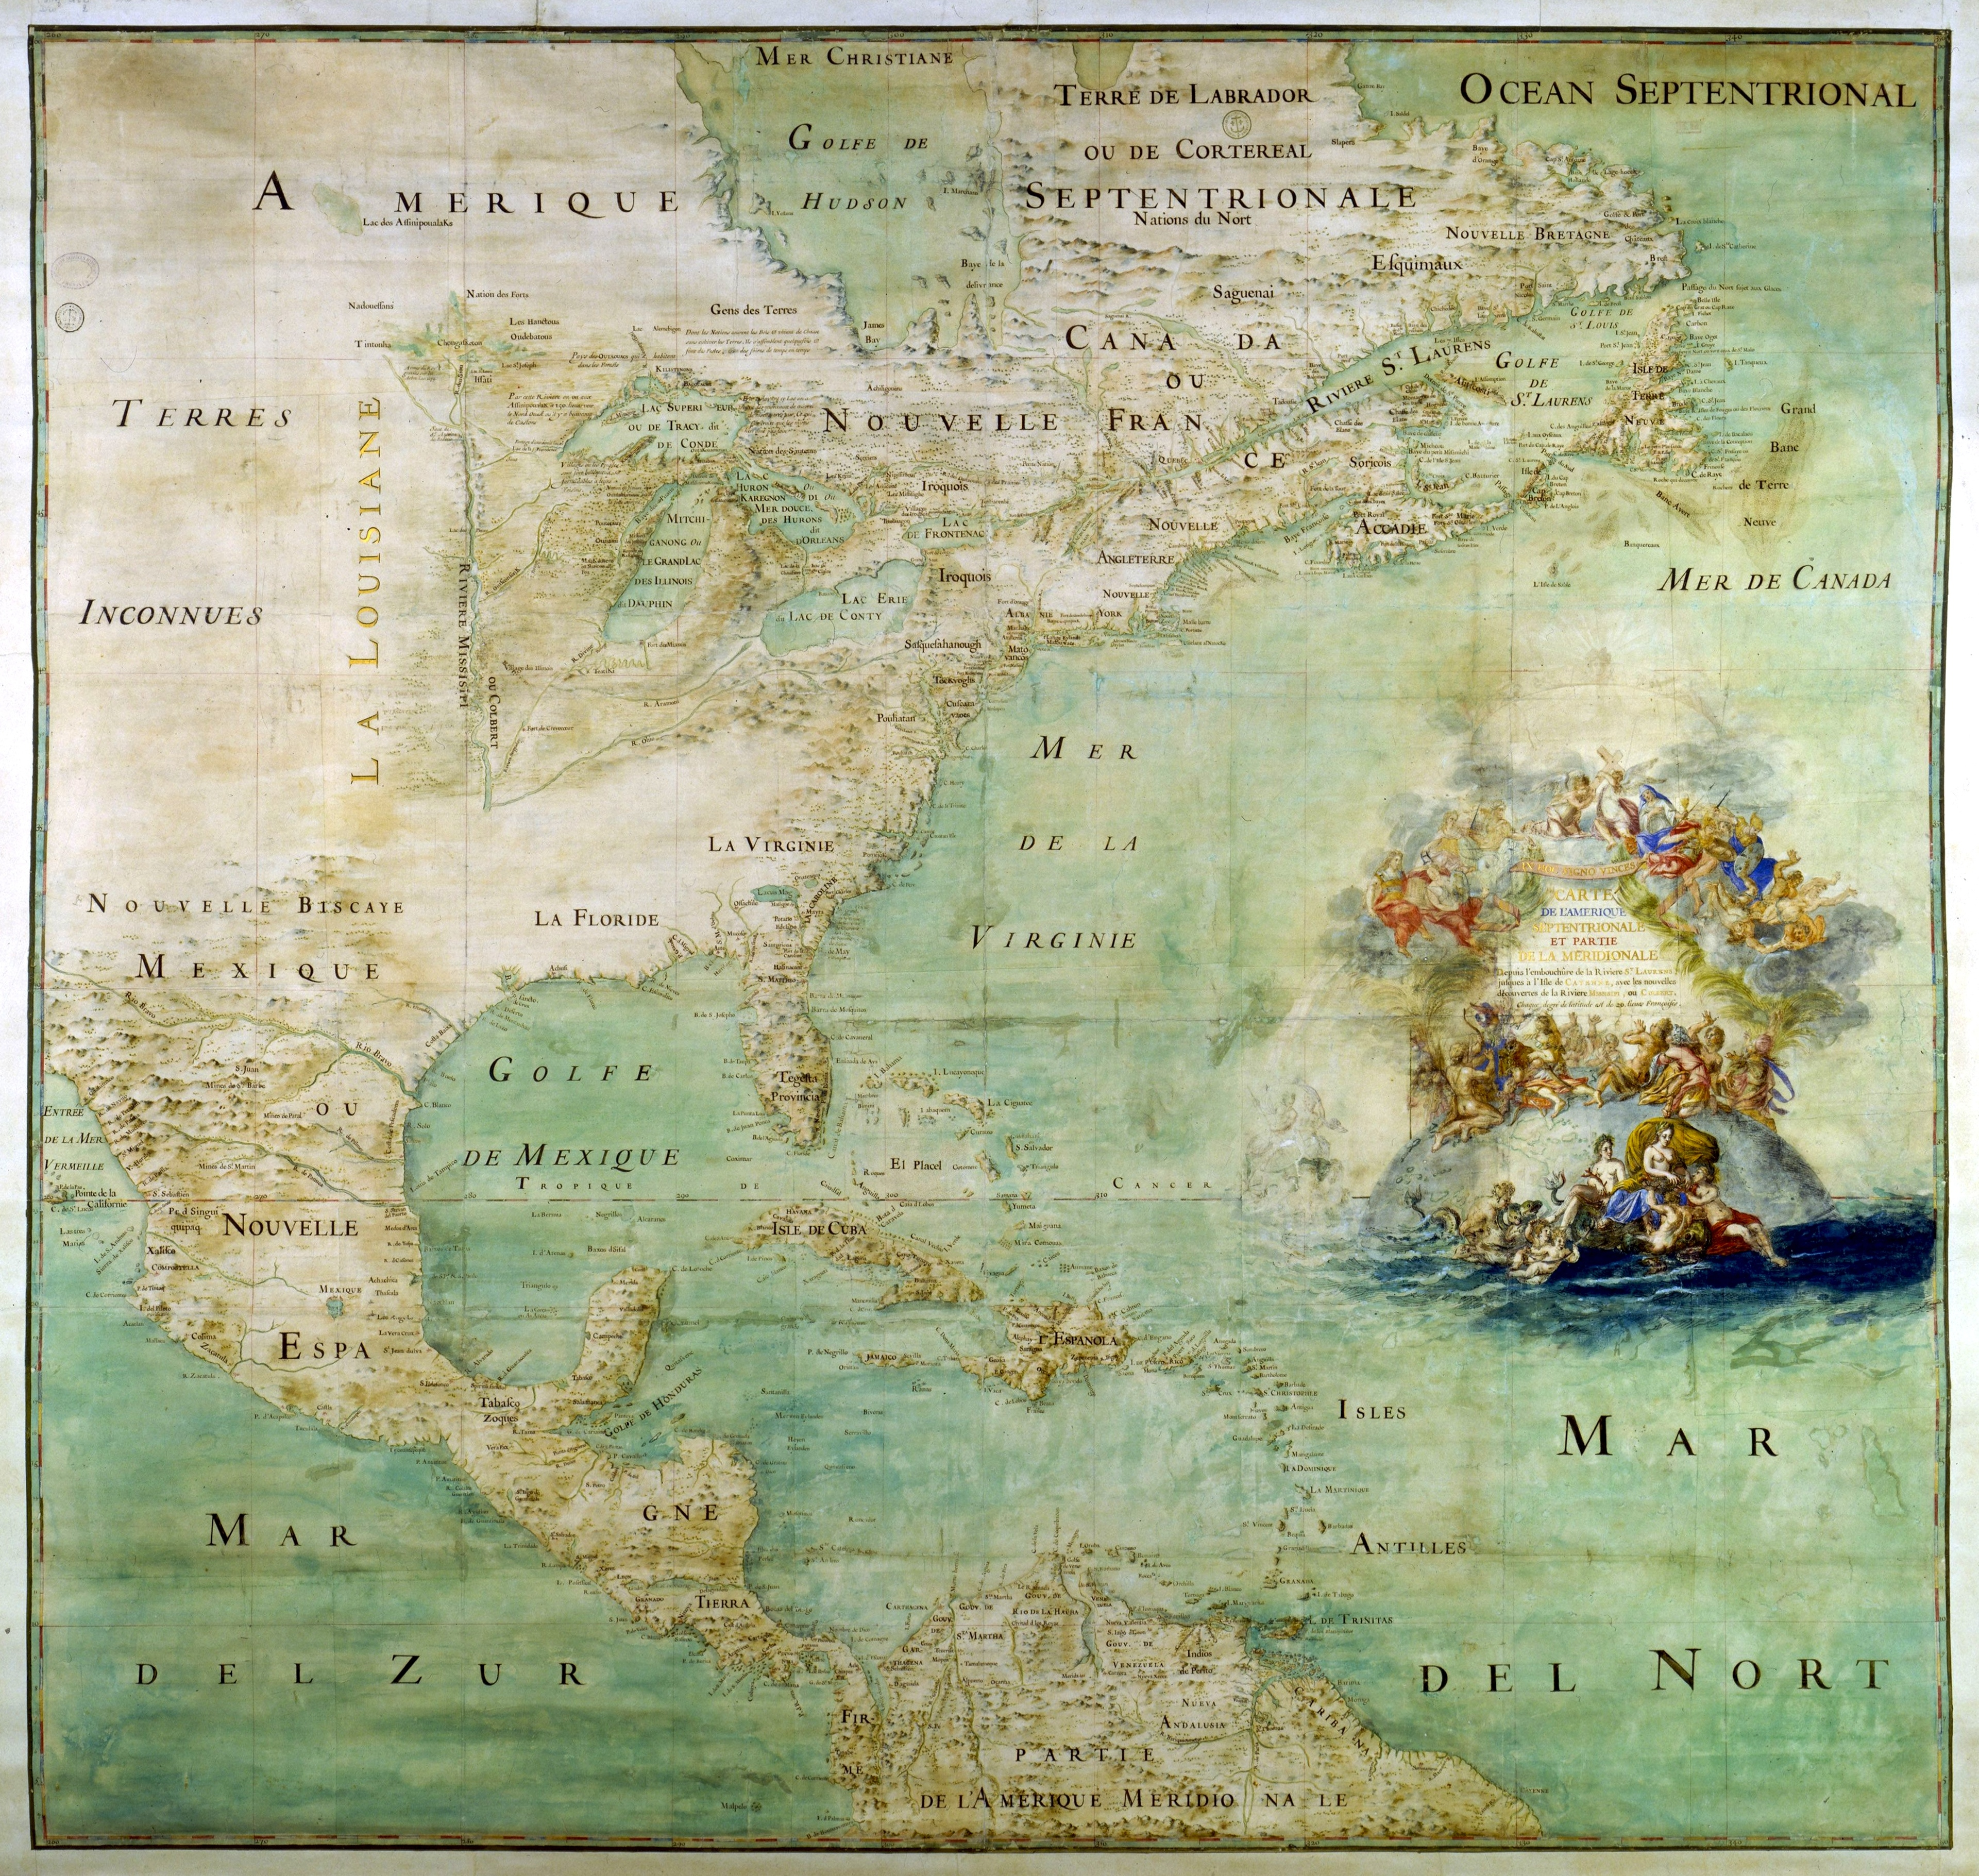 1681 map of the New World